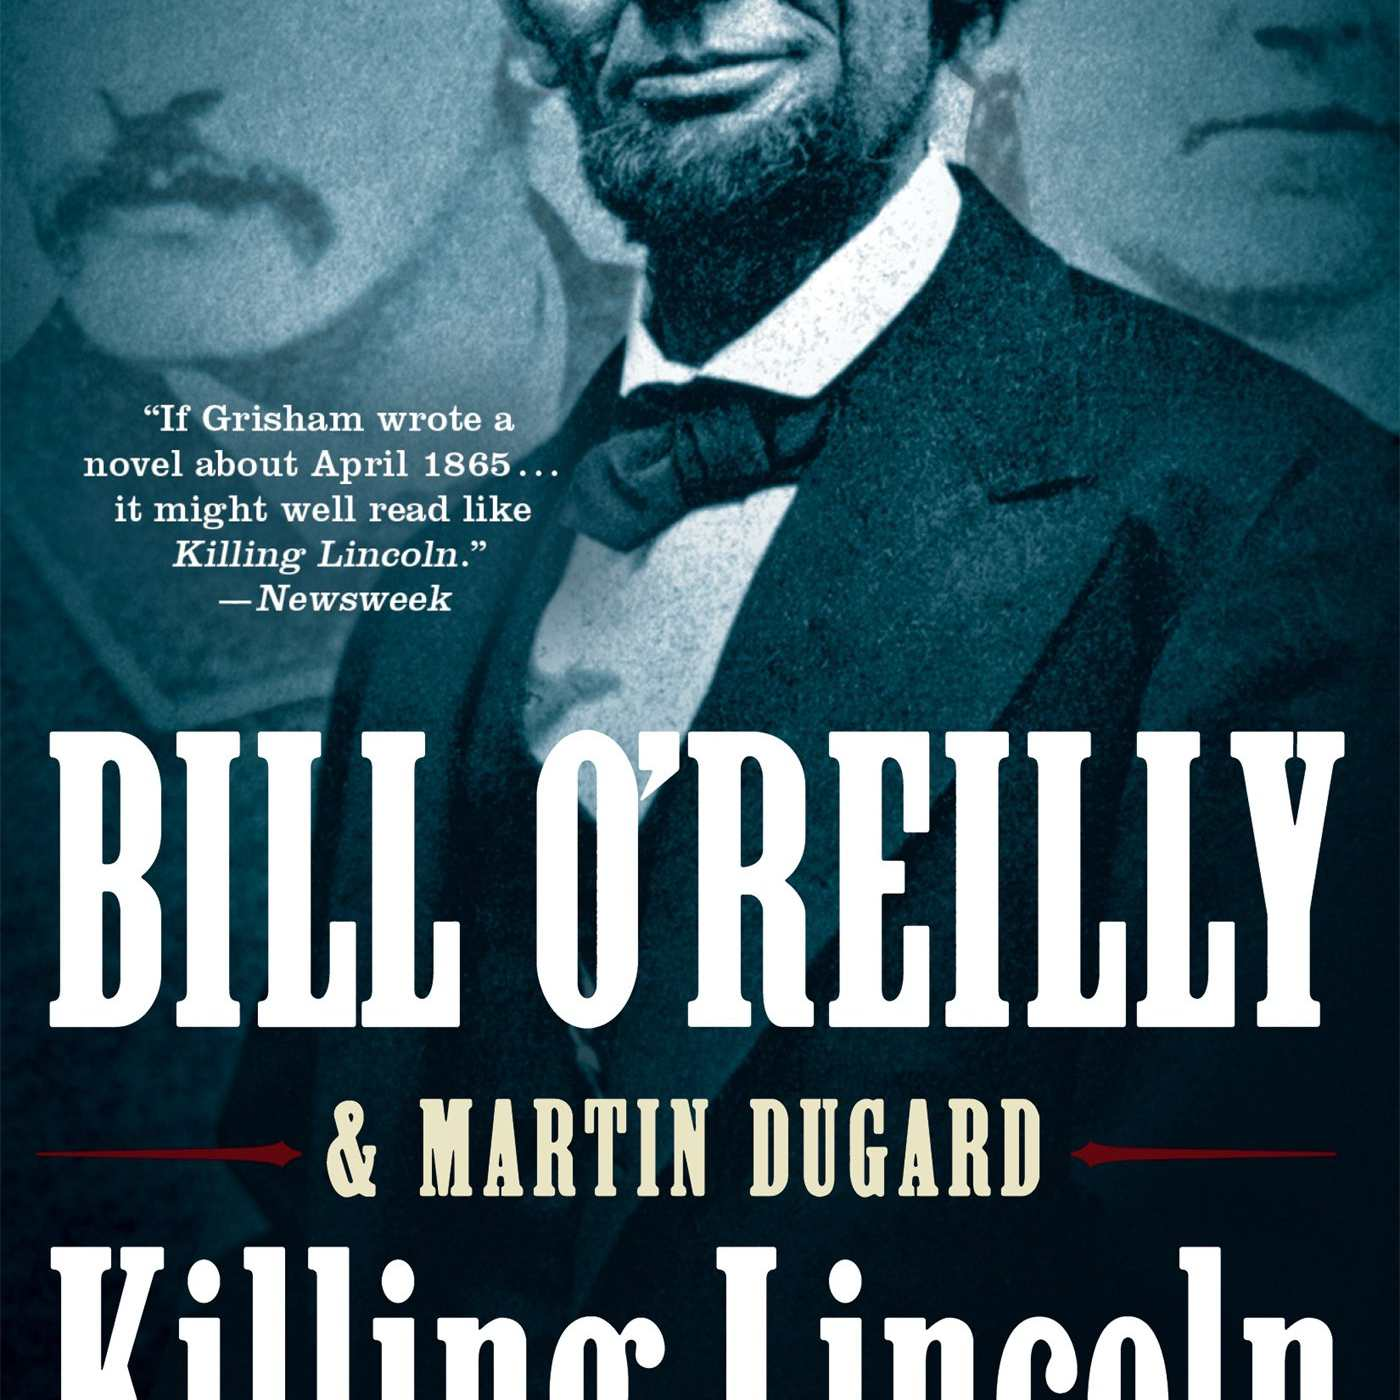 Killing Lincoln, by Bill O'Reilly